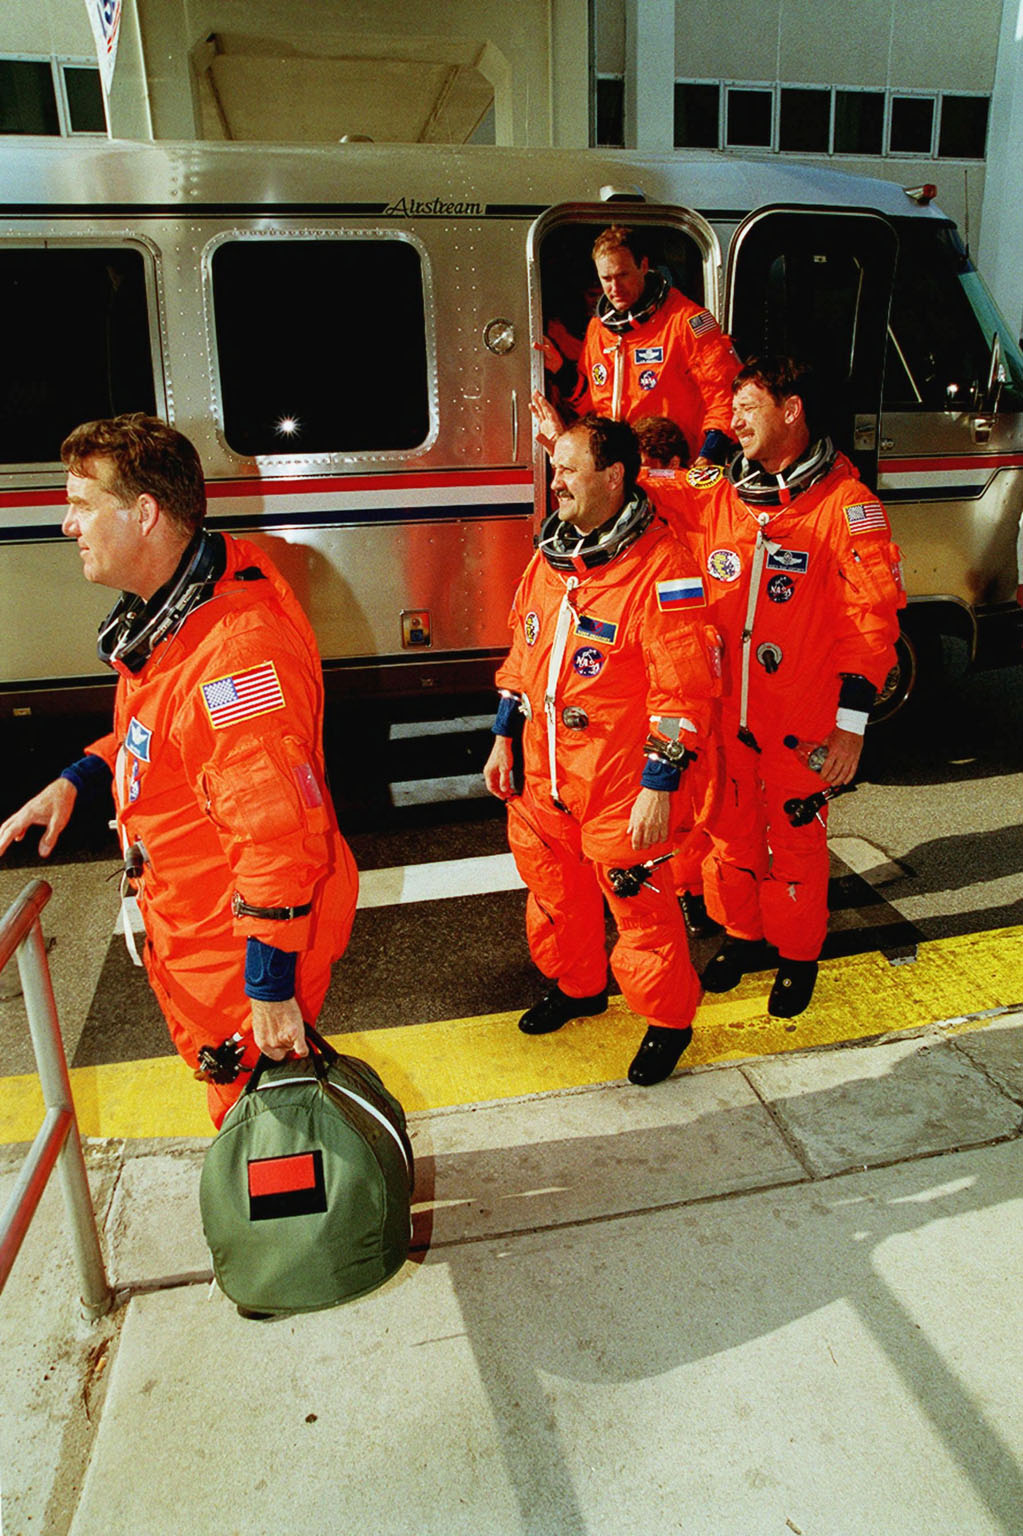 The STS-101 crew returns to the Operations and Checkout Building after the launch was scrubbed due to cross winds at the KSC Shuttle Landing Facility gusting above 20 knots. Flight rules require cross winds at the SLF to be no greater than 15 knots in case of a contingency Shuttle landing. Shown leaving the Astrovan are (left to right) Mission Specialists James S. Voss and Yury Usachev of Russia; Pilot Scott J. Horowitz; and Commander James D. Halsell Jr. in the doorway. Weather conditions will be reevaluated for another launch try on April 25. The mission will take the crew to the International Space Station to deliver logistics and supplies and to prepare the Station for the arrival of the Zvezda Service Module, expected to be launched by Russia in July 2000. Also, the crew will conduct one space walk. This will be the third assembly flight to the Space Station. The mission is expected to last about 10 days